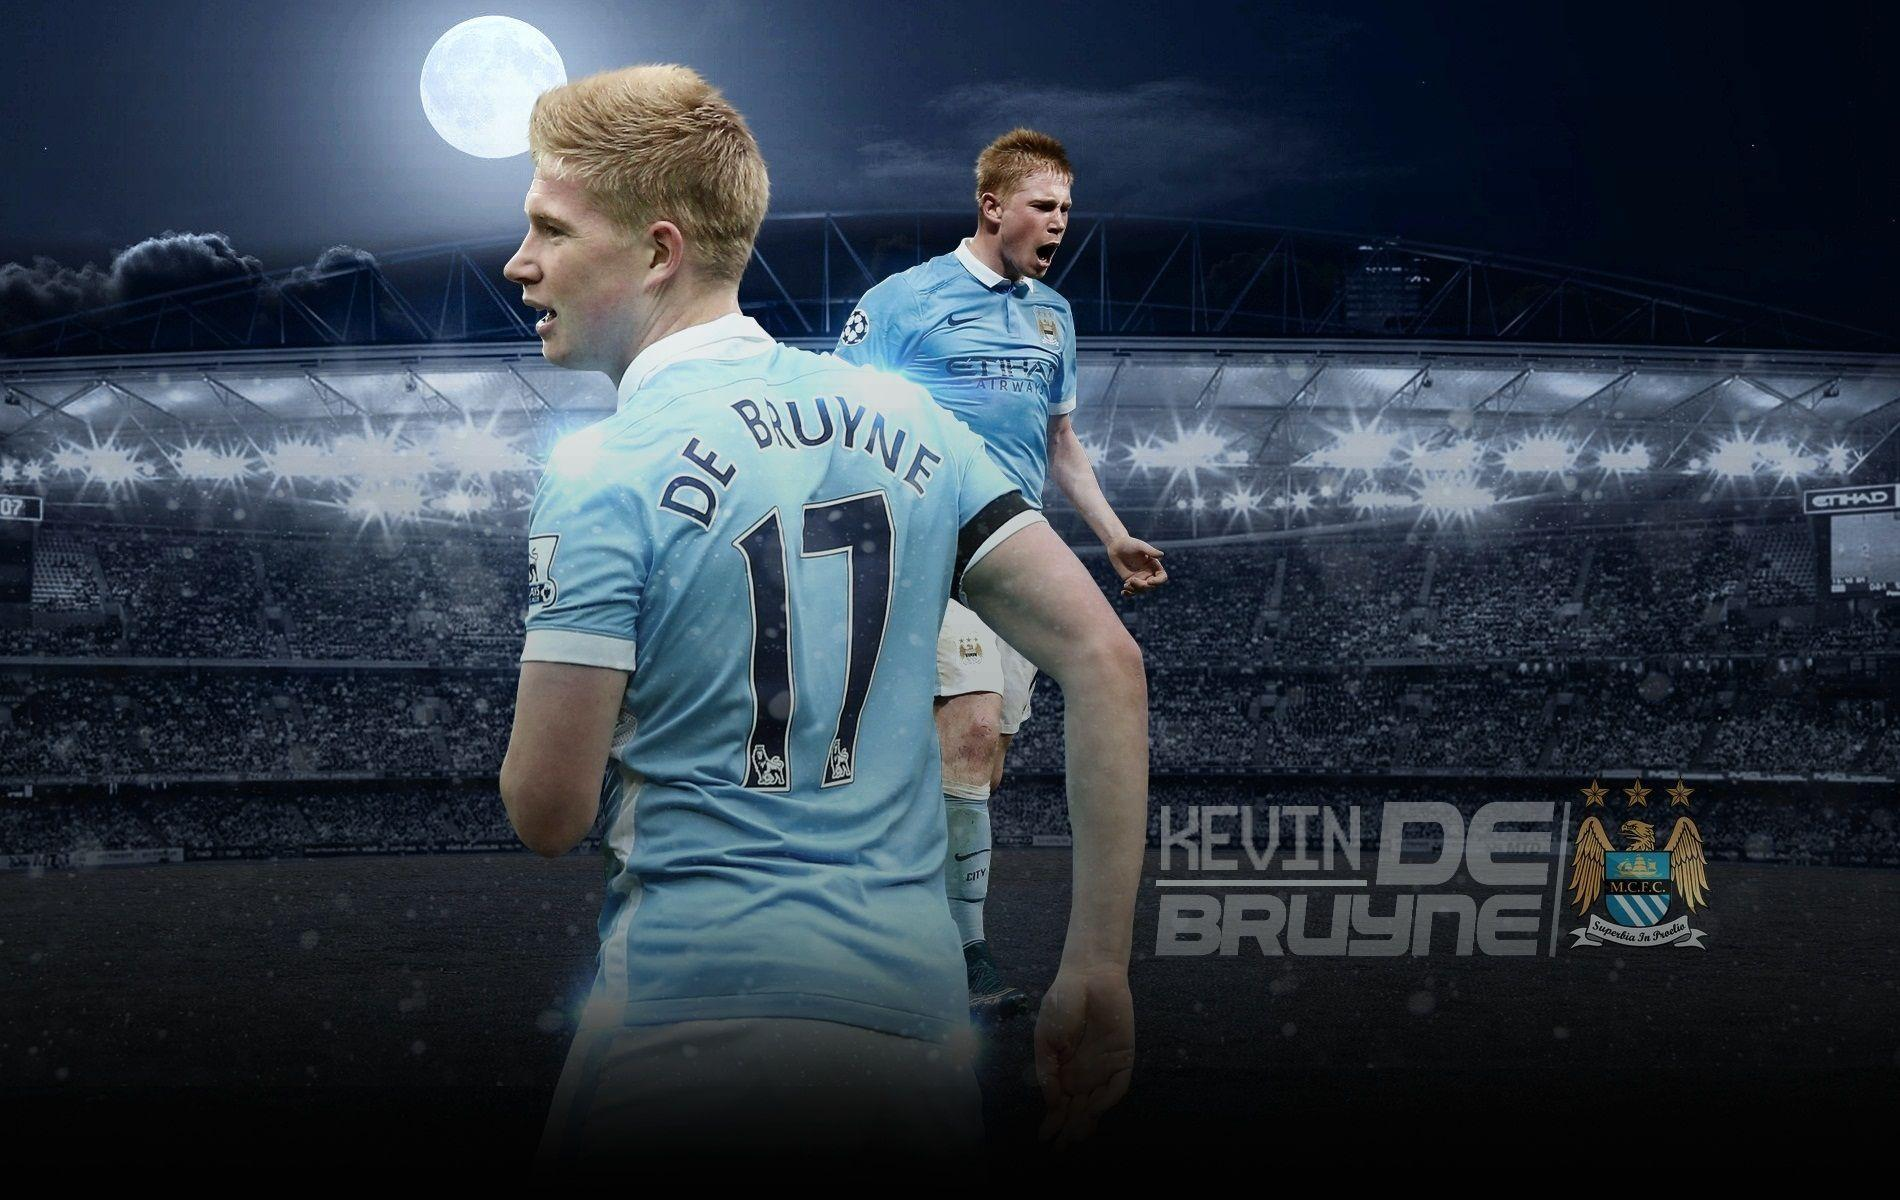 Kevin De Bruyne Wallpapers Wallpaper Cave